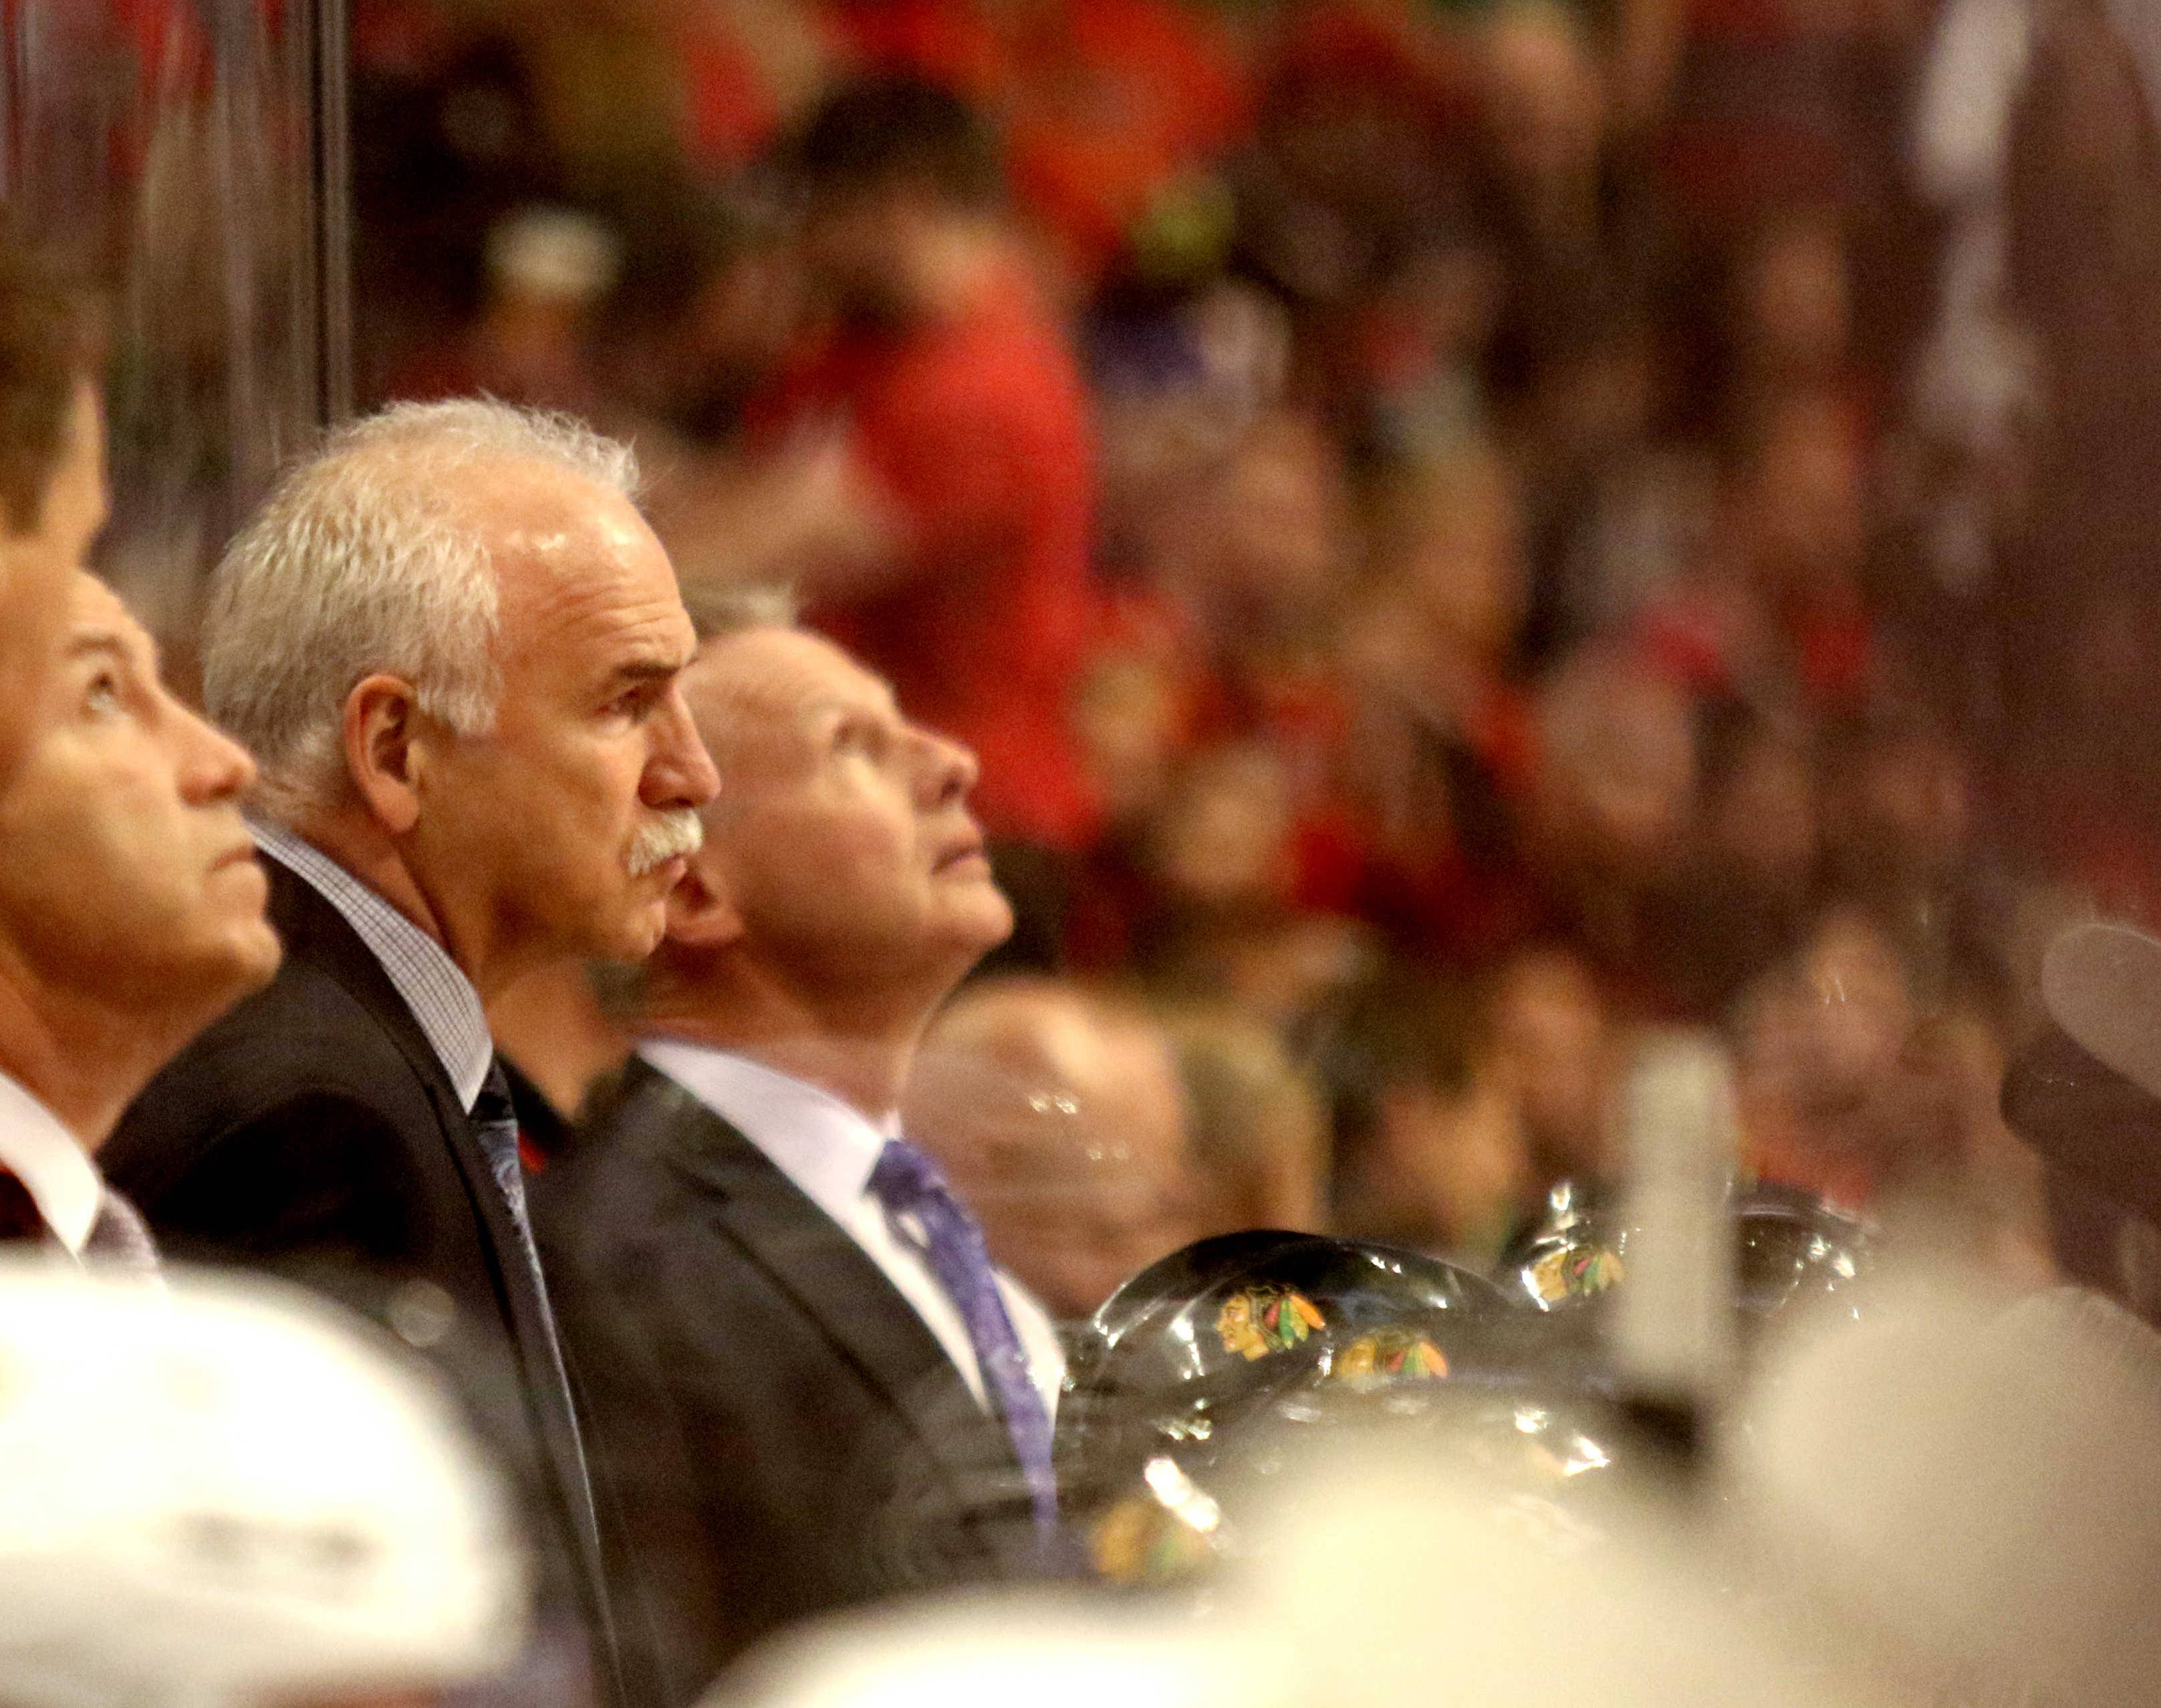 Assistant coach Mike Kitchen, standing to the right of head coach Joel Quenneville, has been fired by the Chicago Blackhawks.